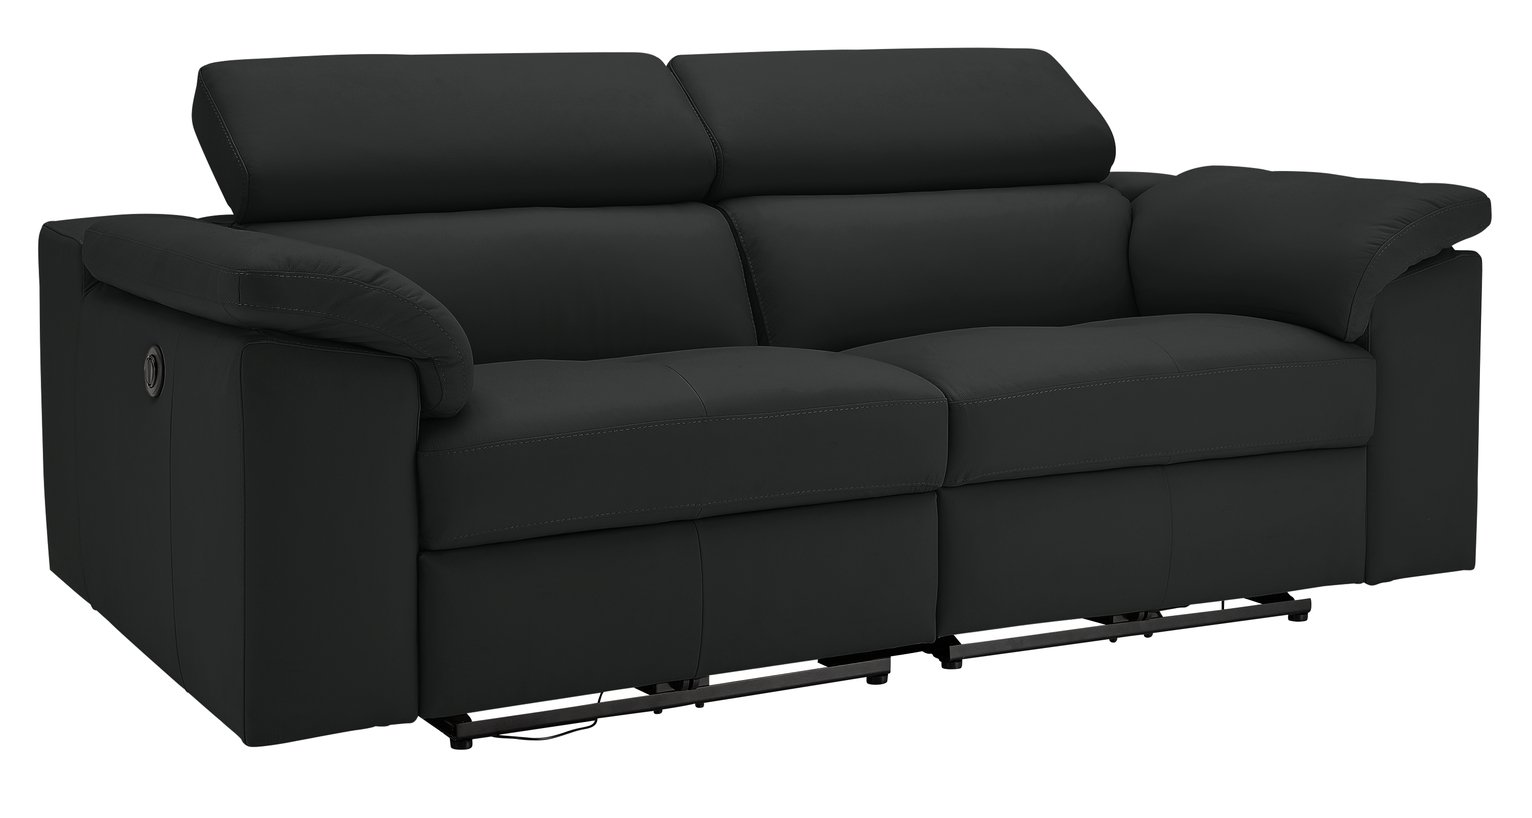 Buy Hygena Valencia 3 Seater Leather Power Recliner Sofa Black